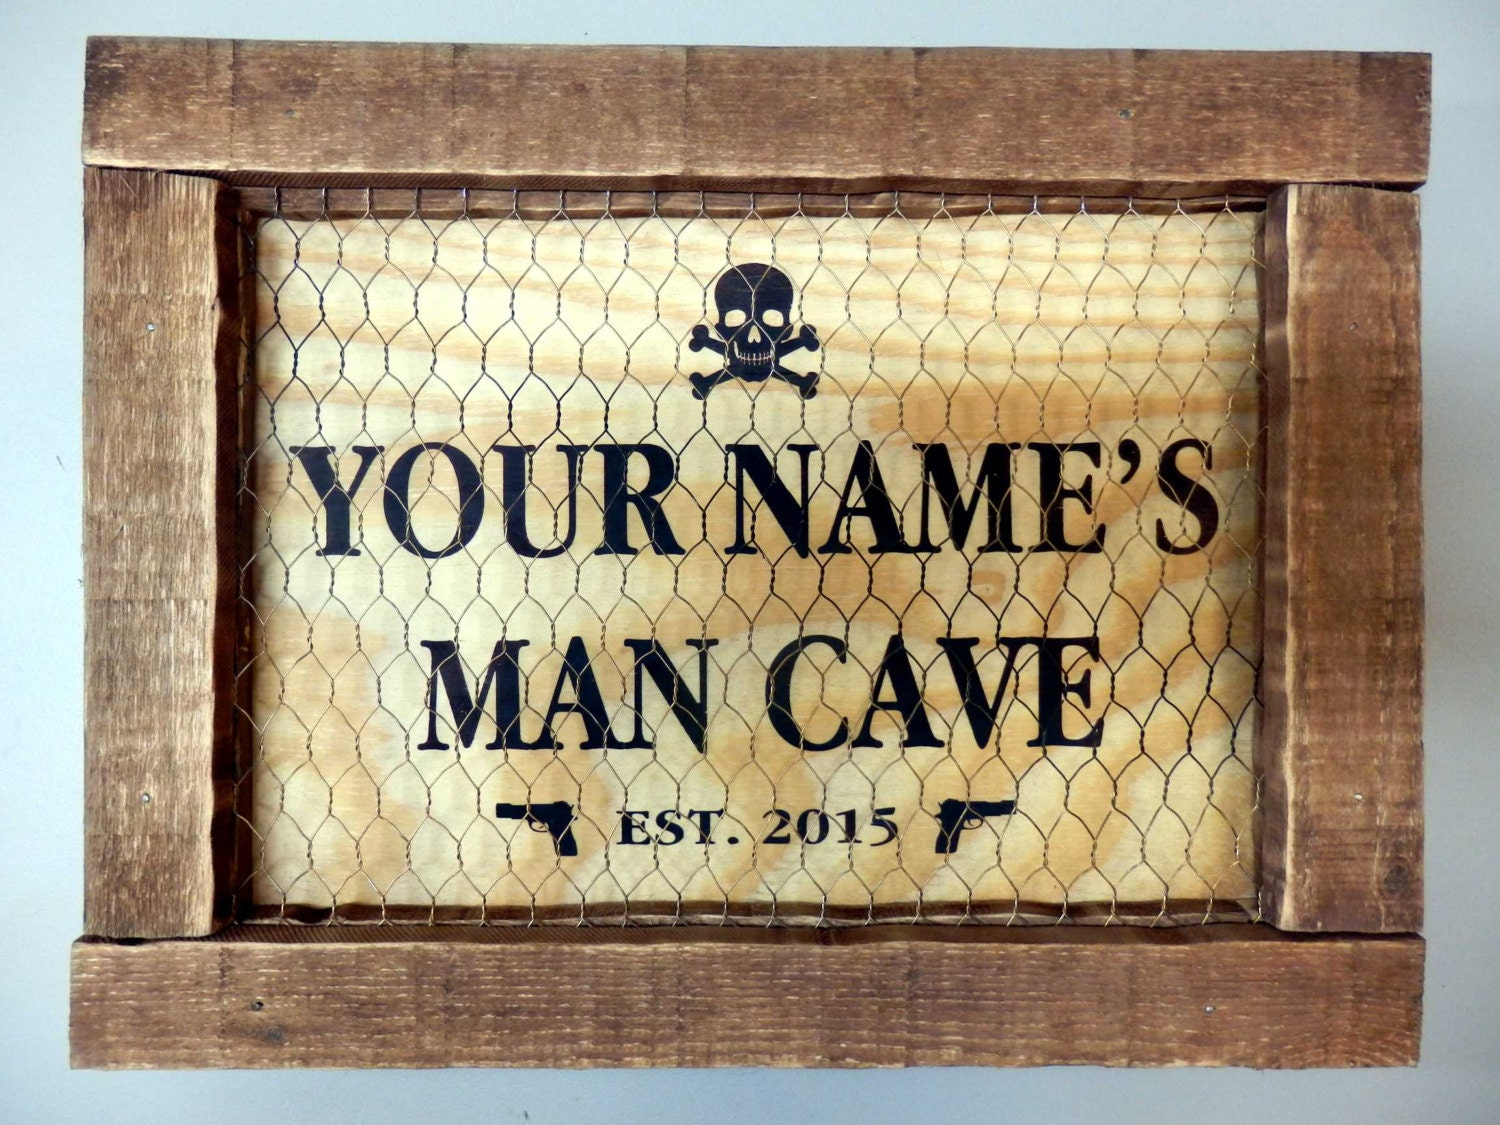 Man Cave Signs Canada : Wooden man cave signs the best